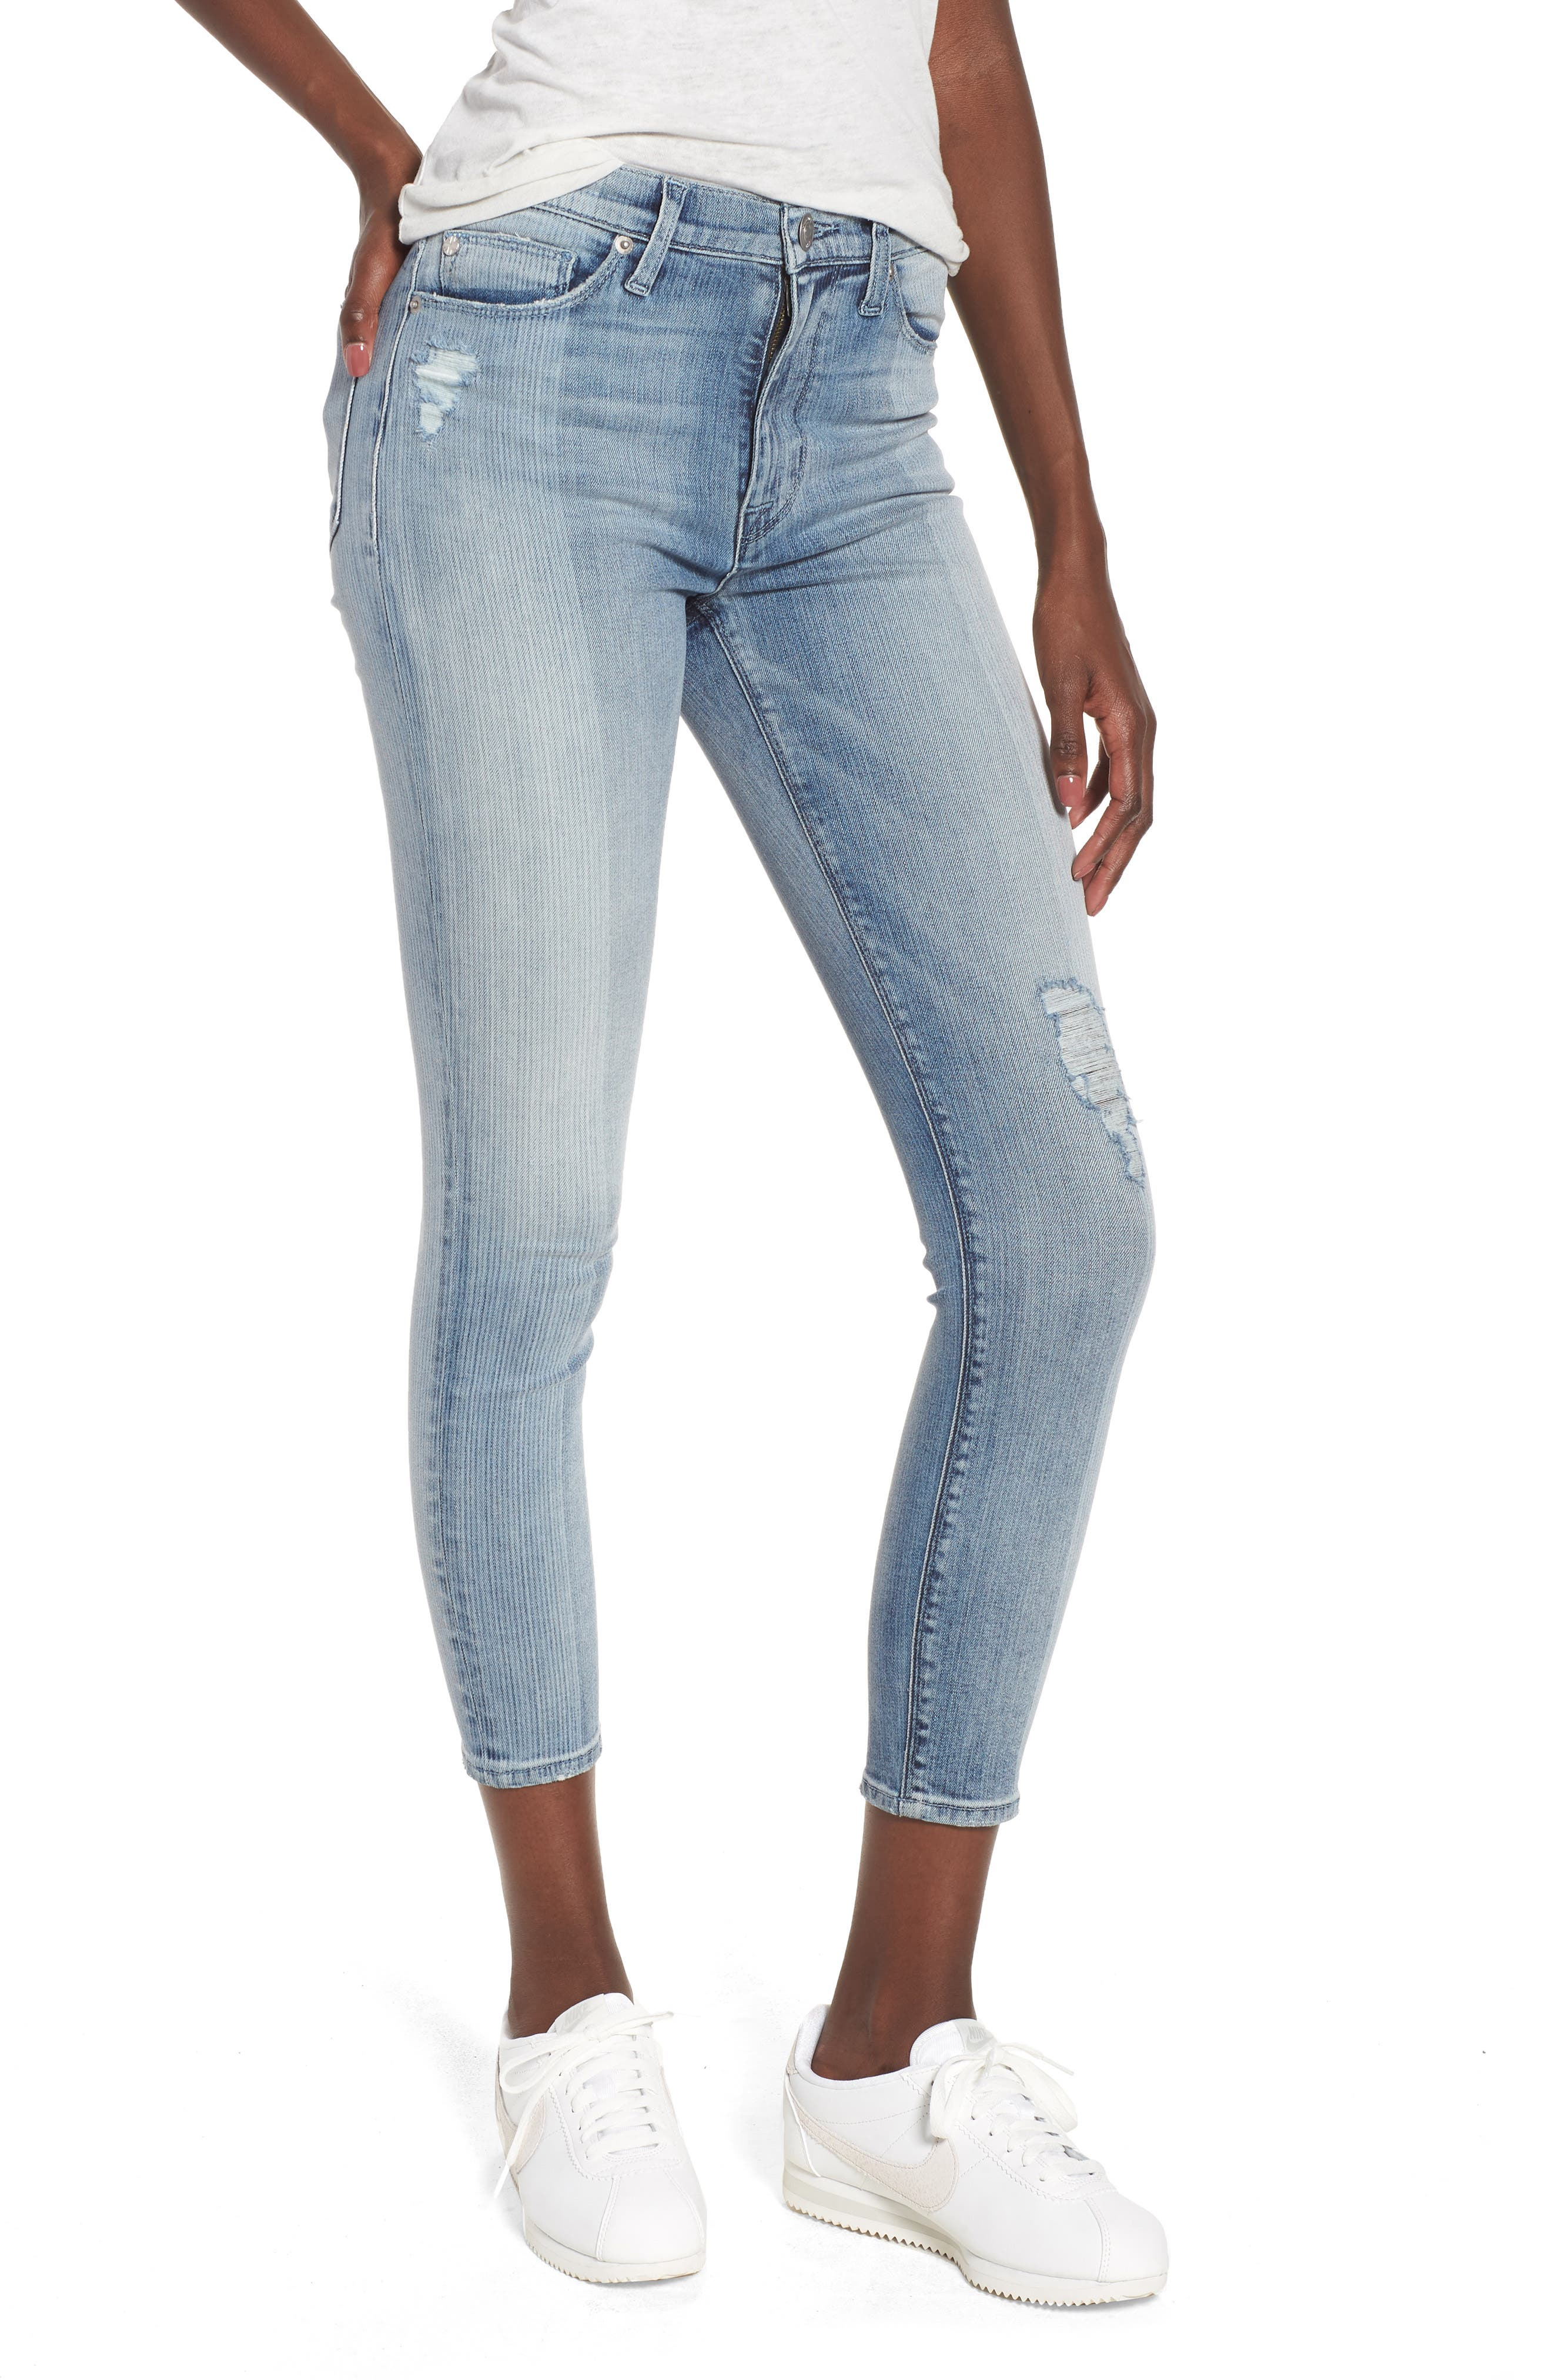 Barbara High Waist Crop Skinny Jeans,                         Main,                         color, Purest Expression